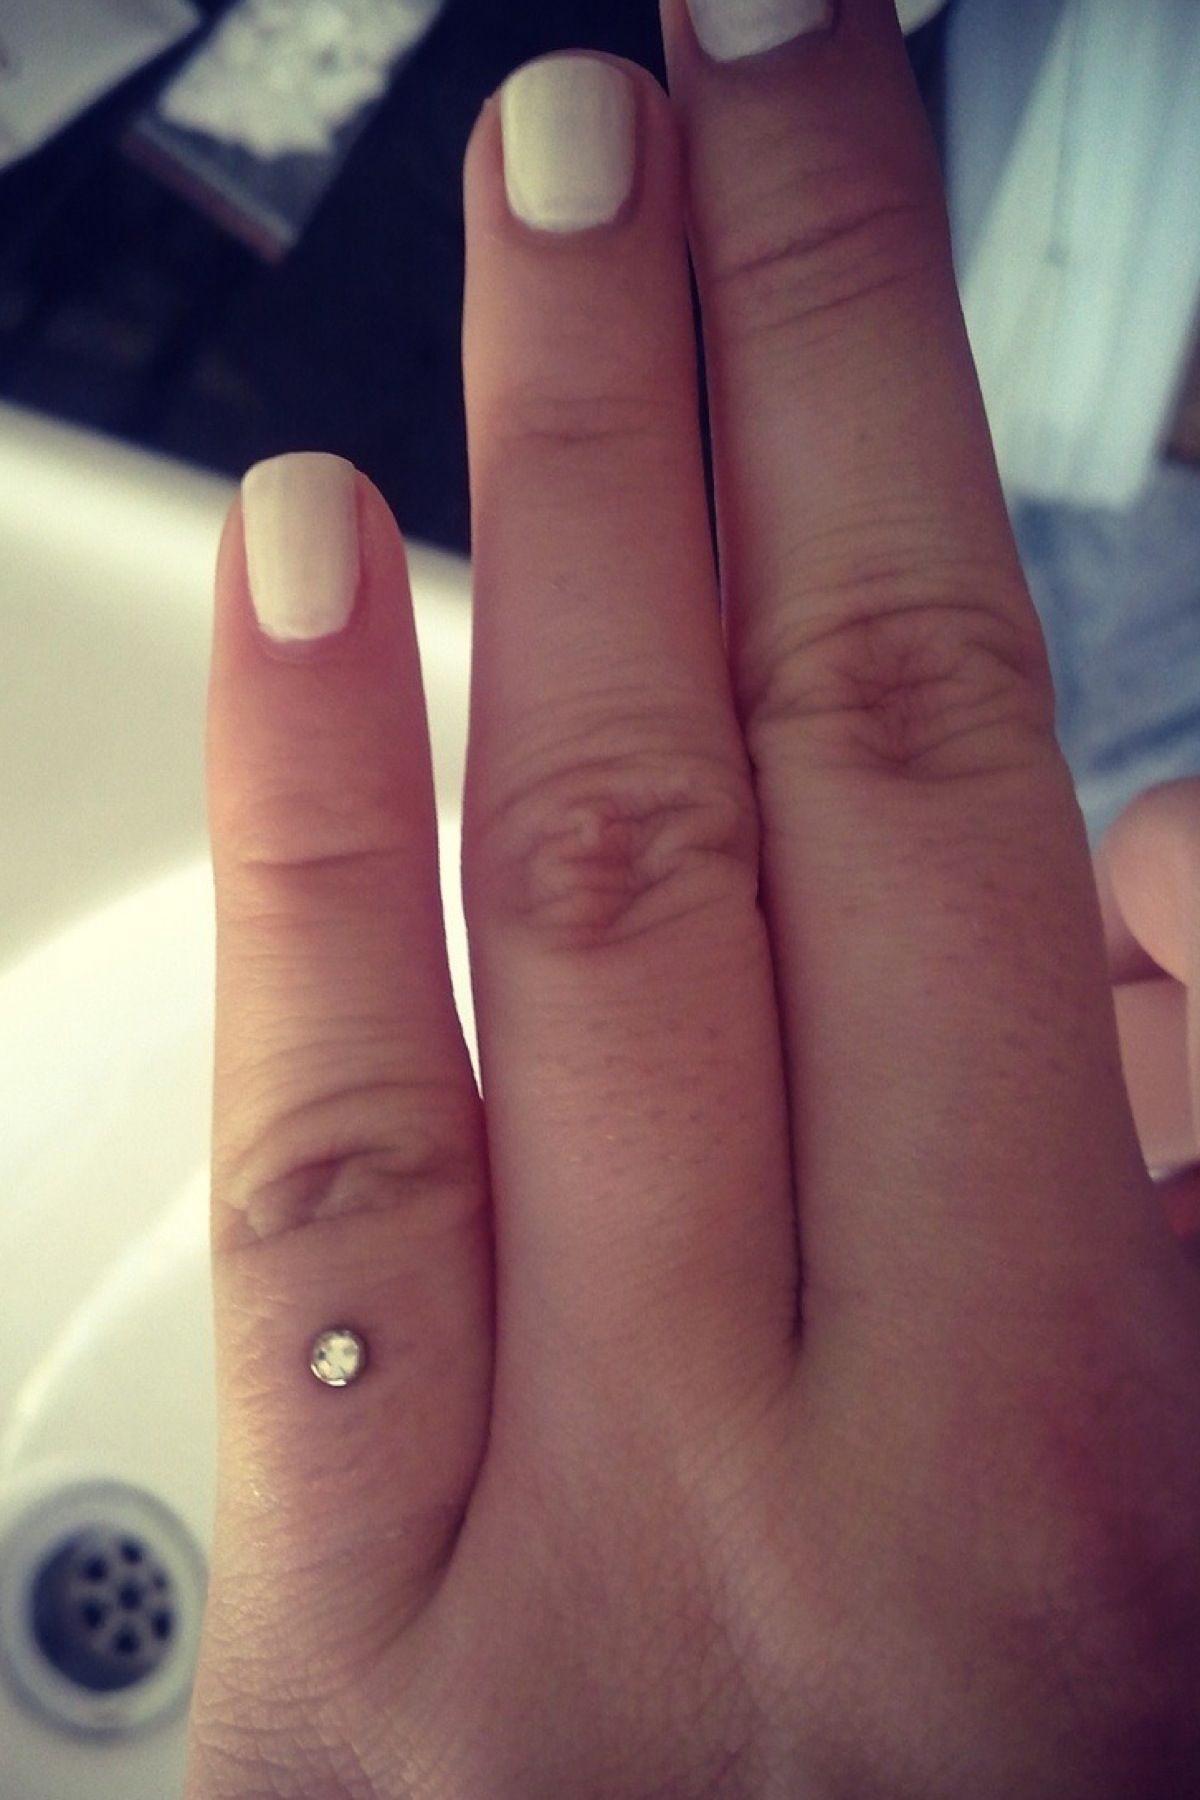 Microdermal piercing ideas  Pinky finger dermal piercing This is actually really cute I would